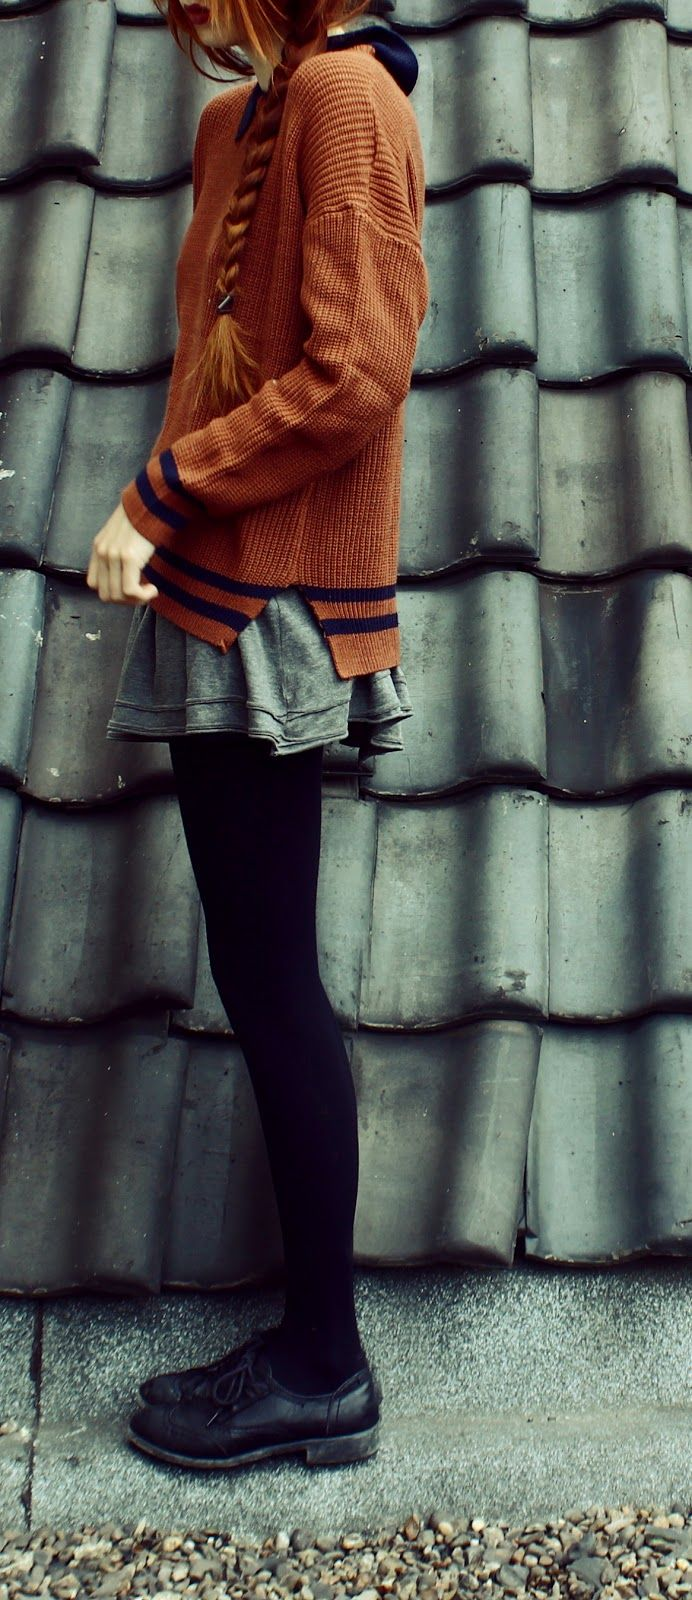 Fall outfit - Oversized persimmon /rusty colored sweater, skirt, black tights, and black shoes  #streetstyle